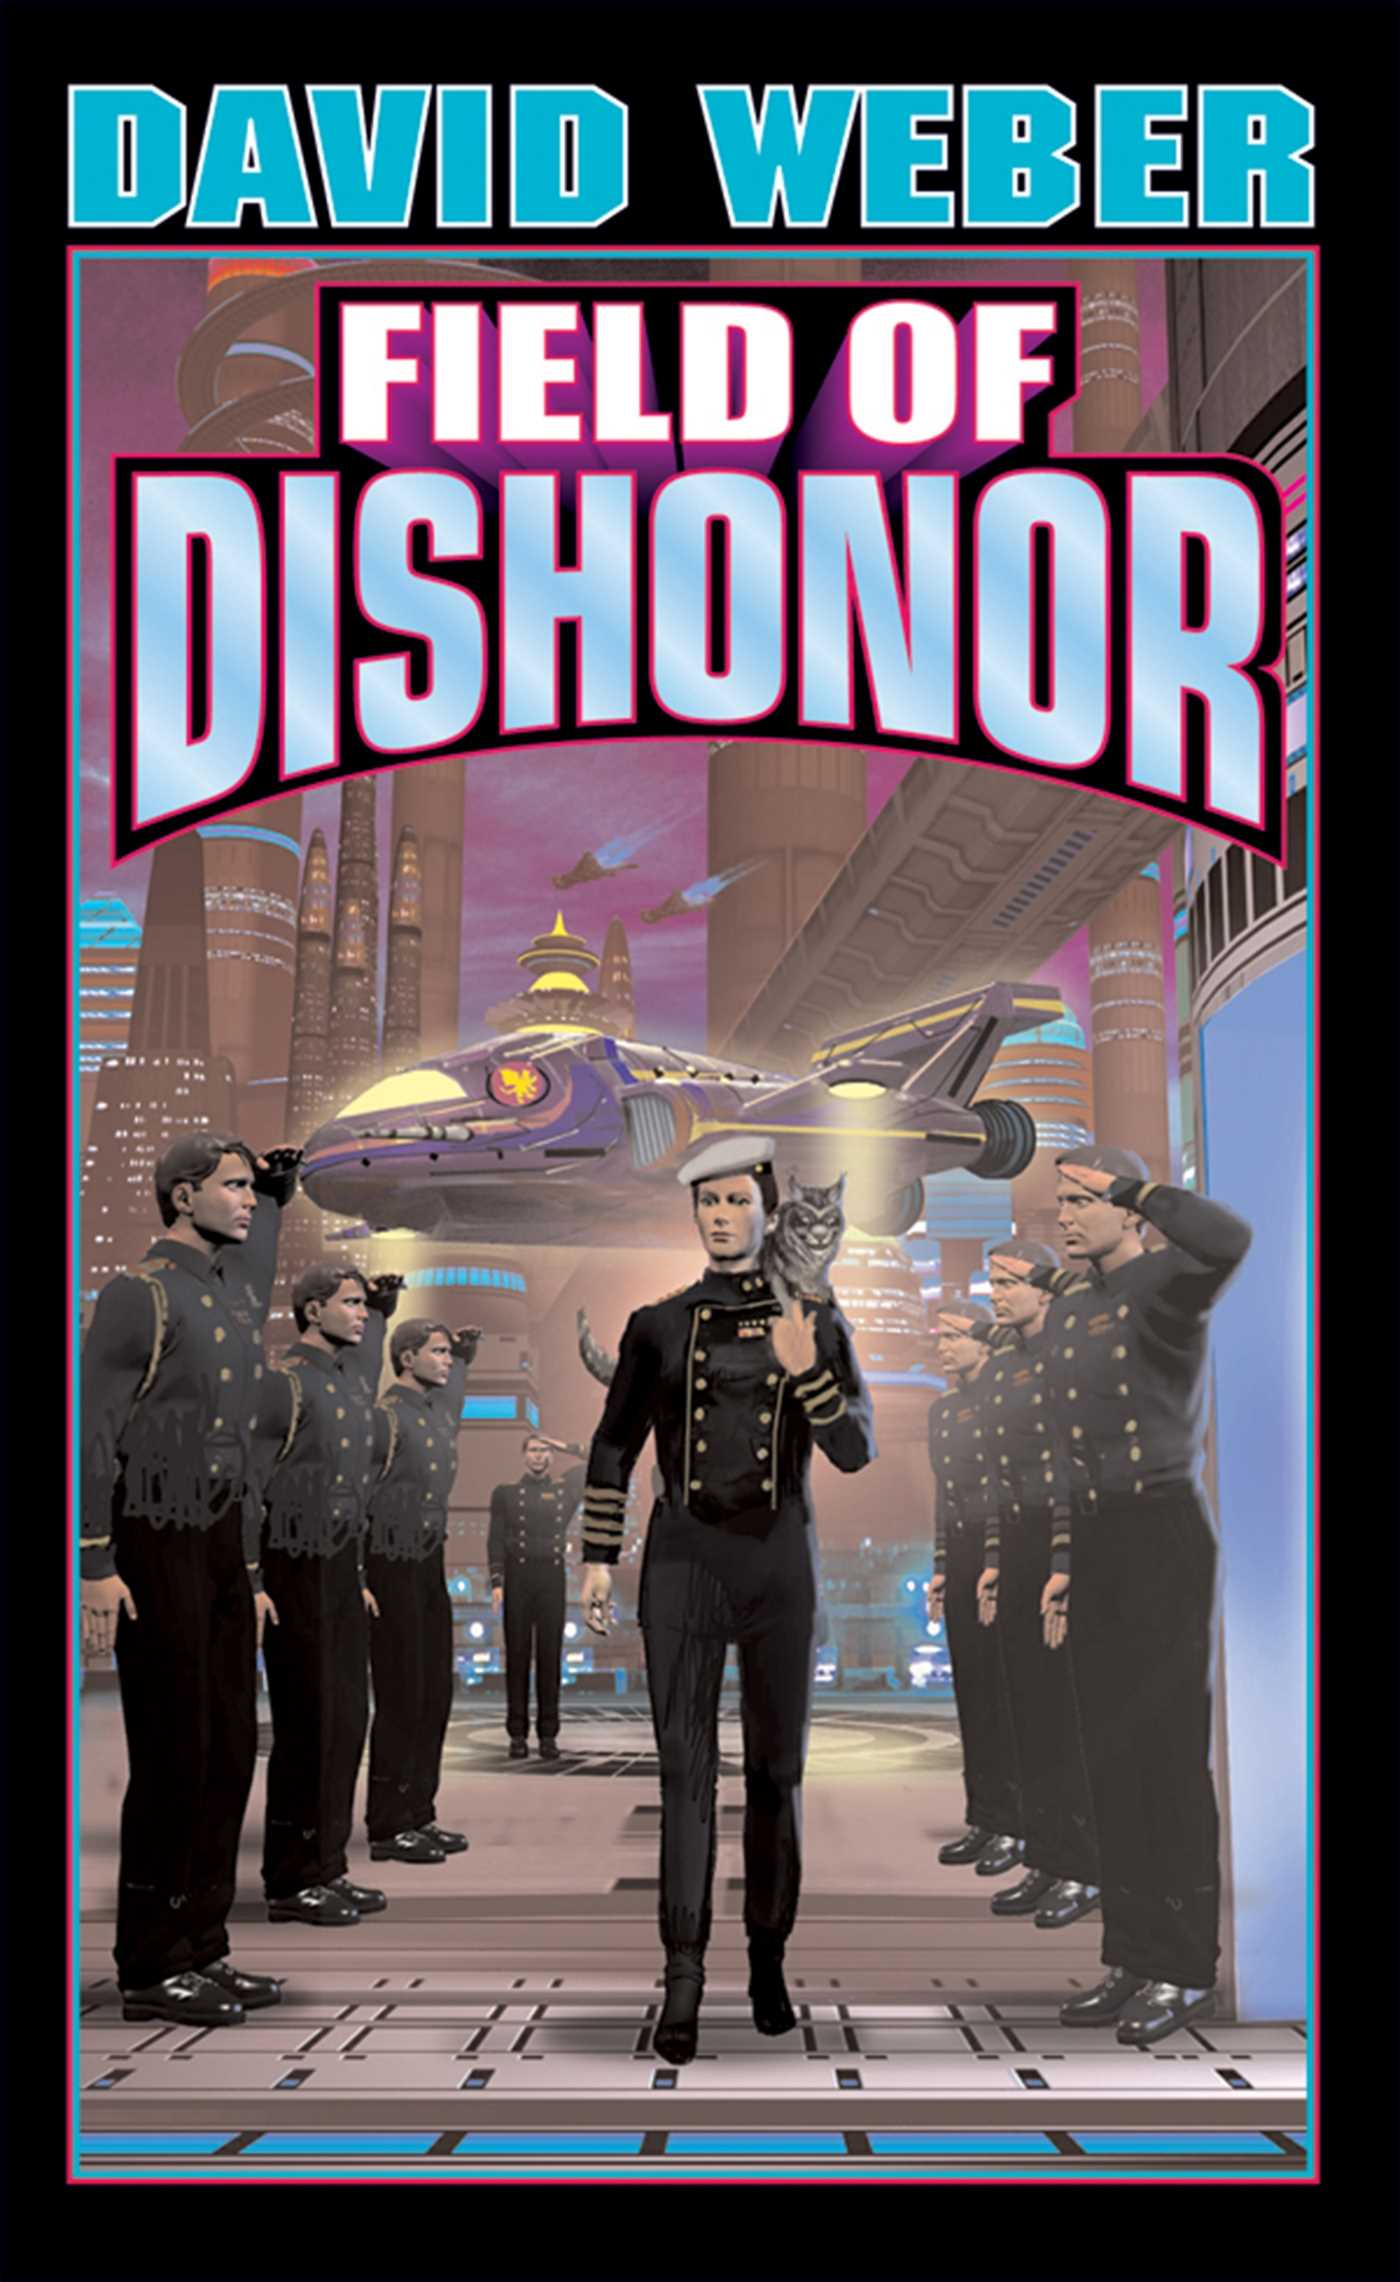 Field of dishonor 9780743435741 hr